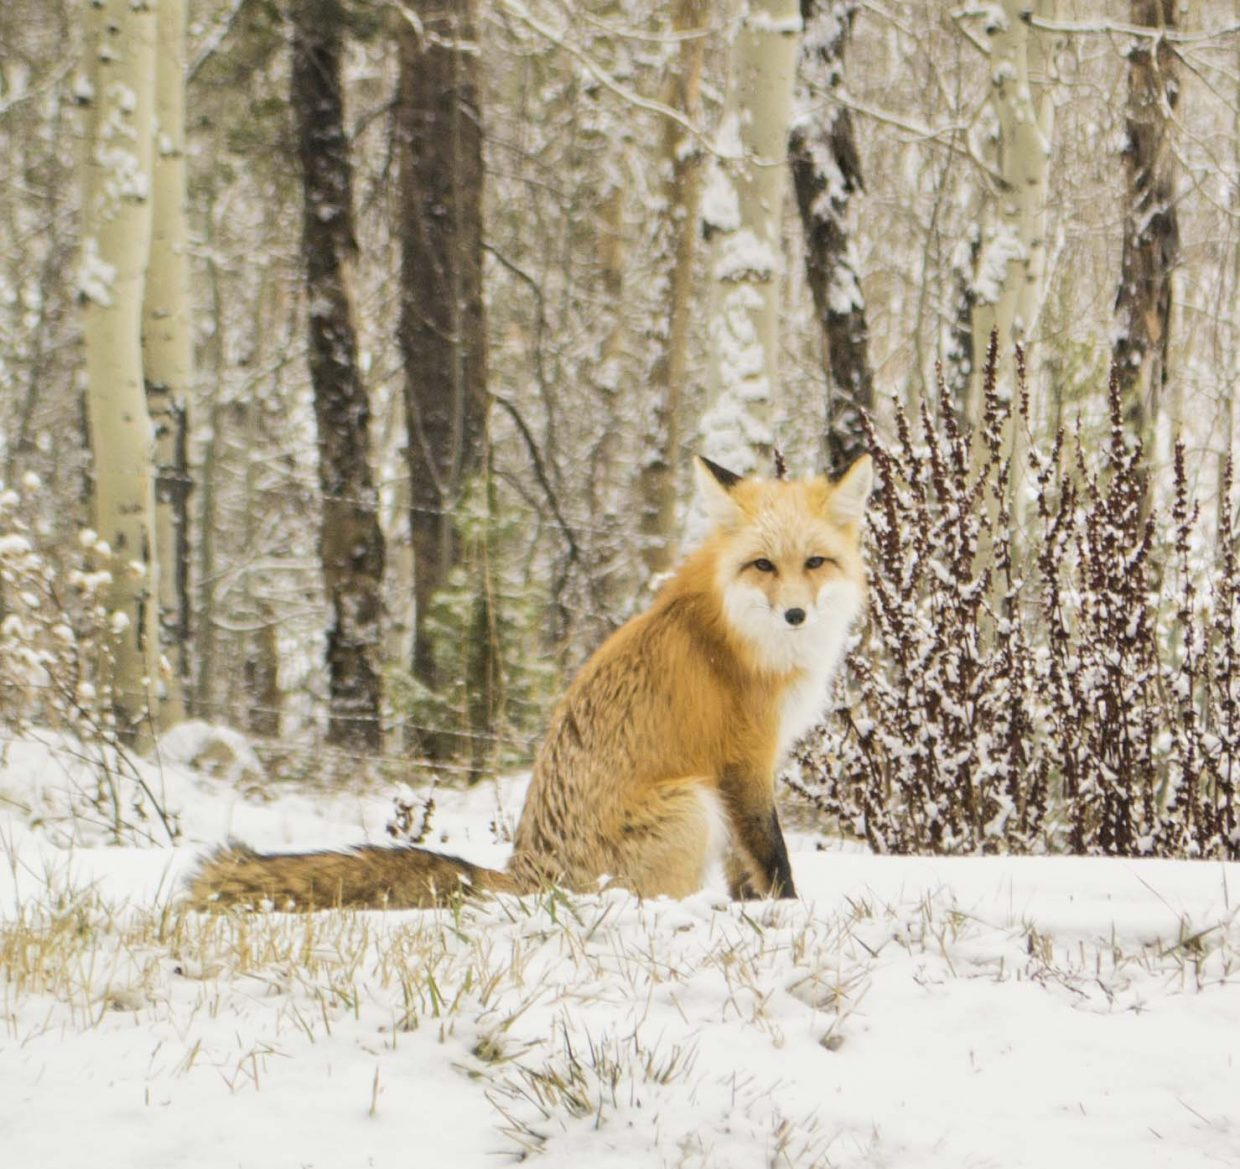 Our daily visitor, 'Snowflake' the fox. Hahns Peak. Submitted by Rachael Jacobson.